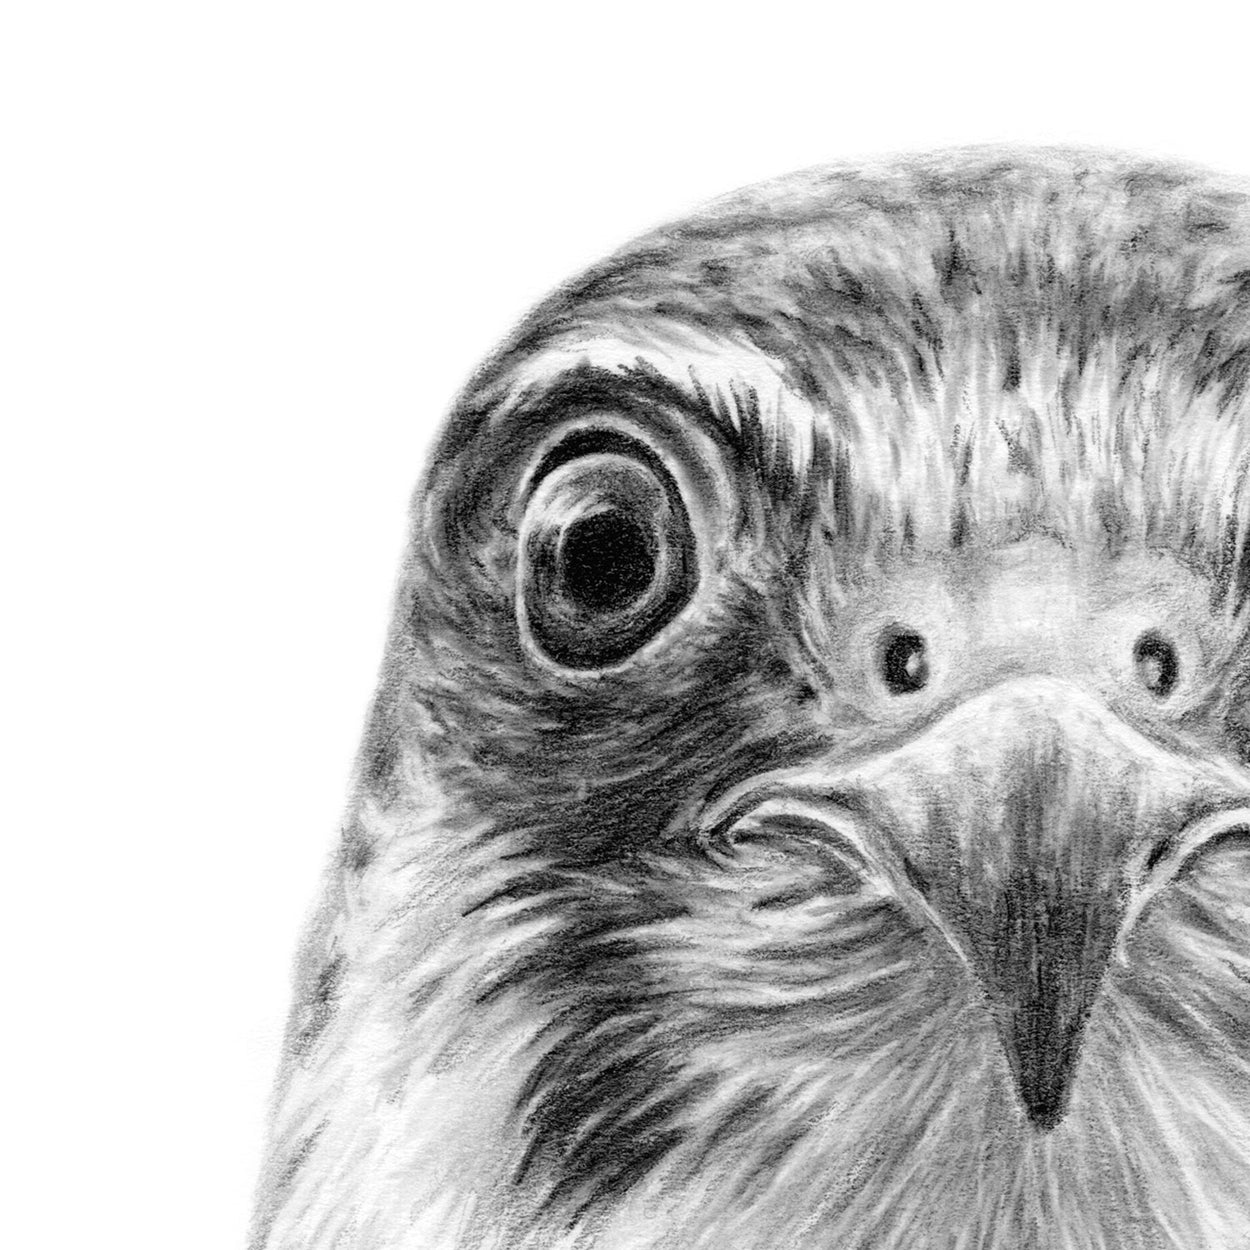 Hobby Drawing Close-up Face - The Thriving Wild